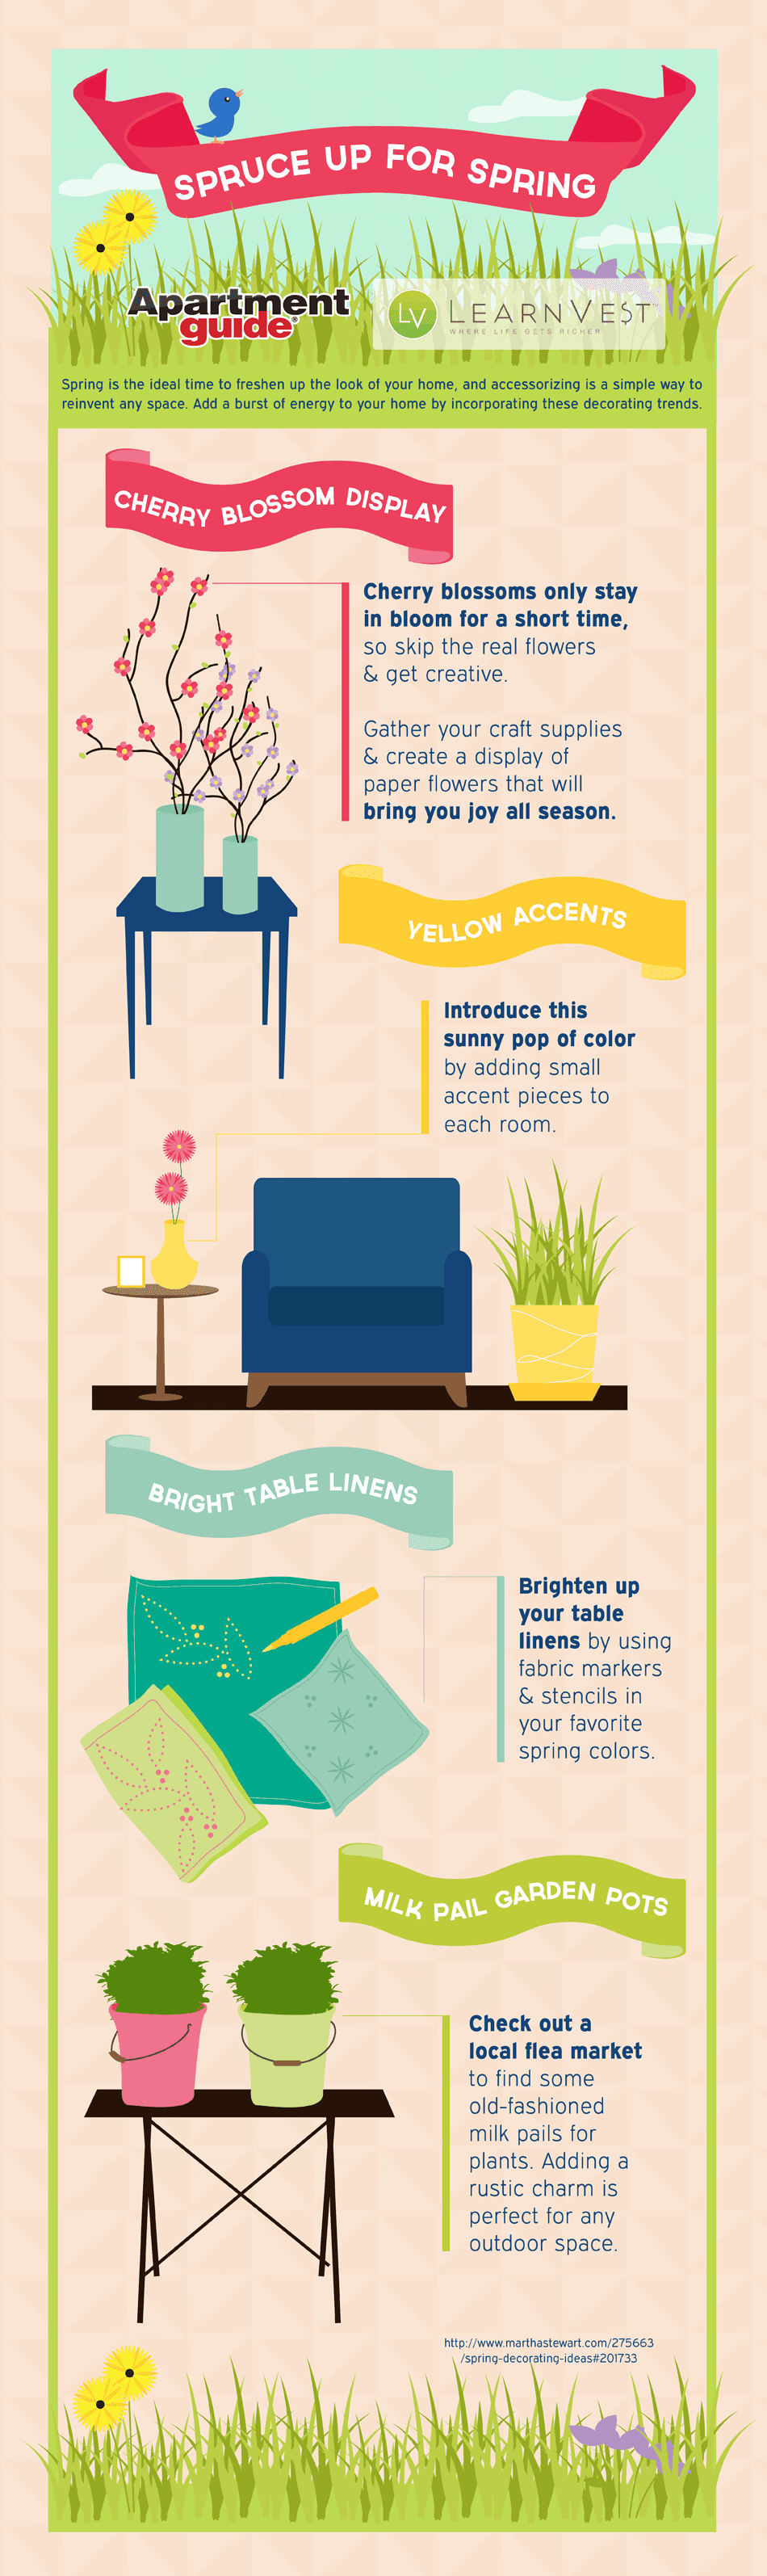 Spruce up for spring freshen up your home infographic for Decorating advice